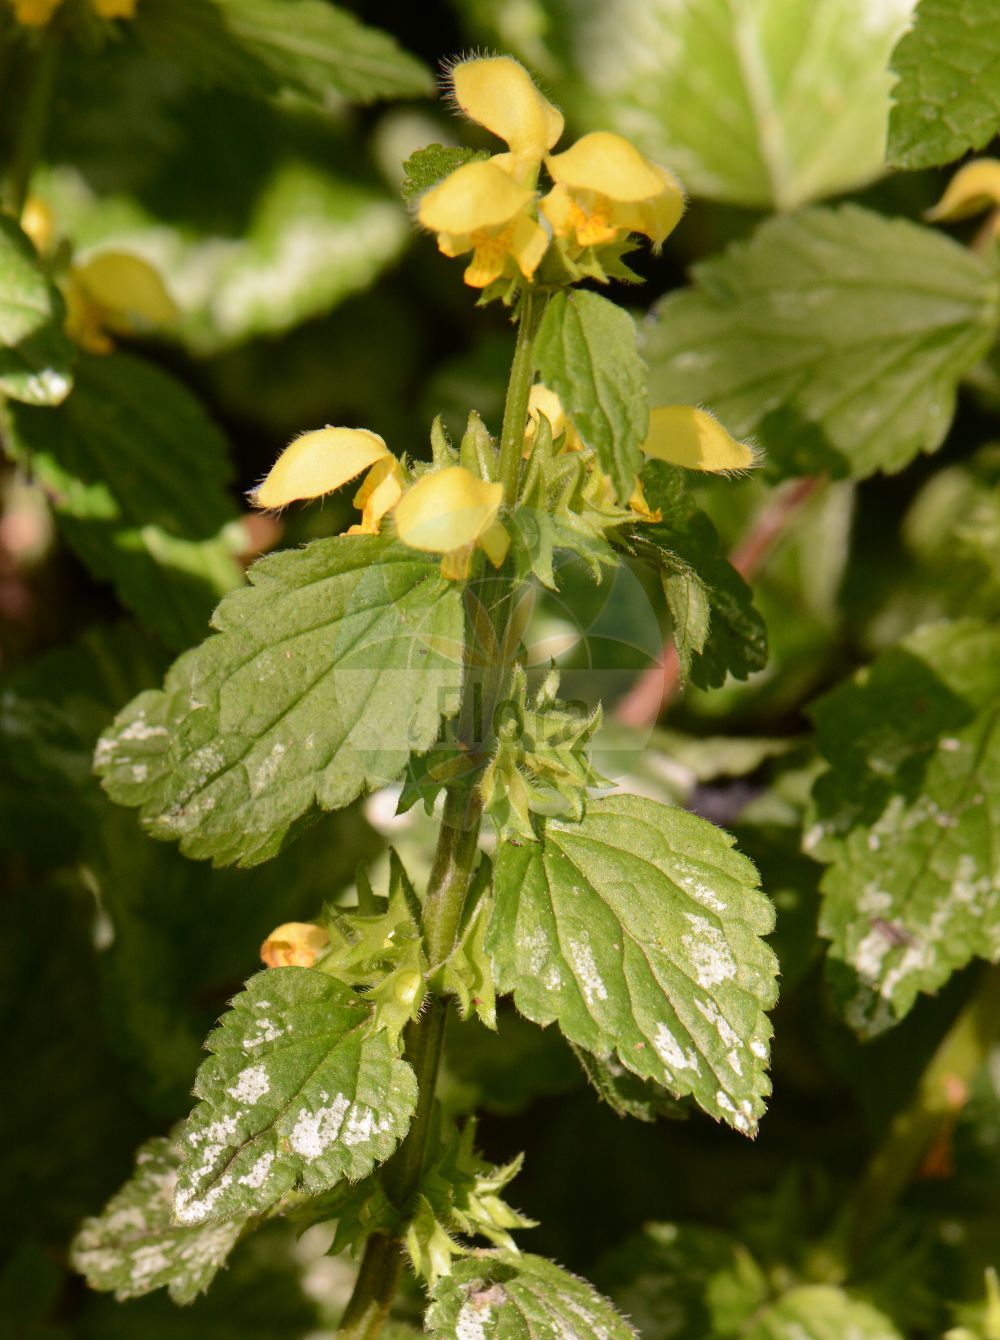 Foto von Lamium galeobdolon subsp. argentatum (Silber-Goldnessel - Silverleaved Archangel). Das Foto wurde in Koeln, Nordrhein-Westfalen, Deutschland aufgenommen. ---- Photo of Lamium galeobdolon subsp. argentatum (Silber-Goldnessel - Silverleaved Archangel).The picture was taken in Cologne, North Rhine-Westphalia, Germany.(Lamium galeobdolon subsp. argentatum,Silber-Goldnessel,Silverleaved Archangel,Silberblaettrige Goldnessel,Lamium,Taubnessel,Deadnettle,Lamiaceae,Lippenbluetengewaechse;Lippenbluetler,Nettle family)